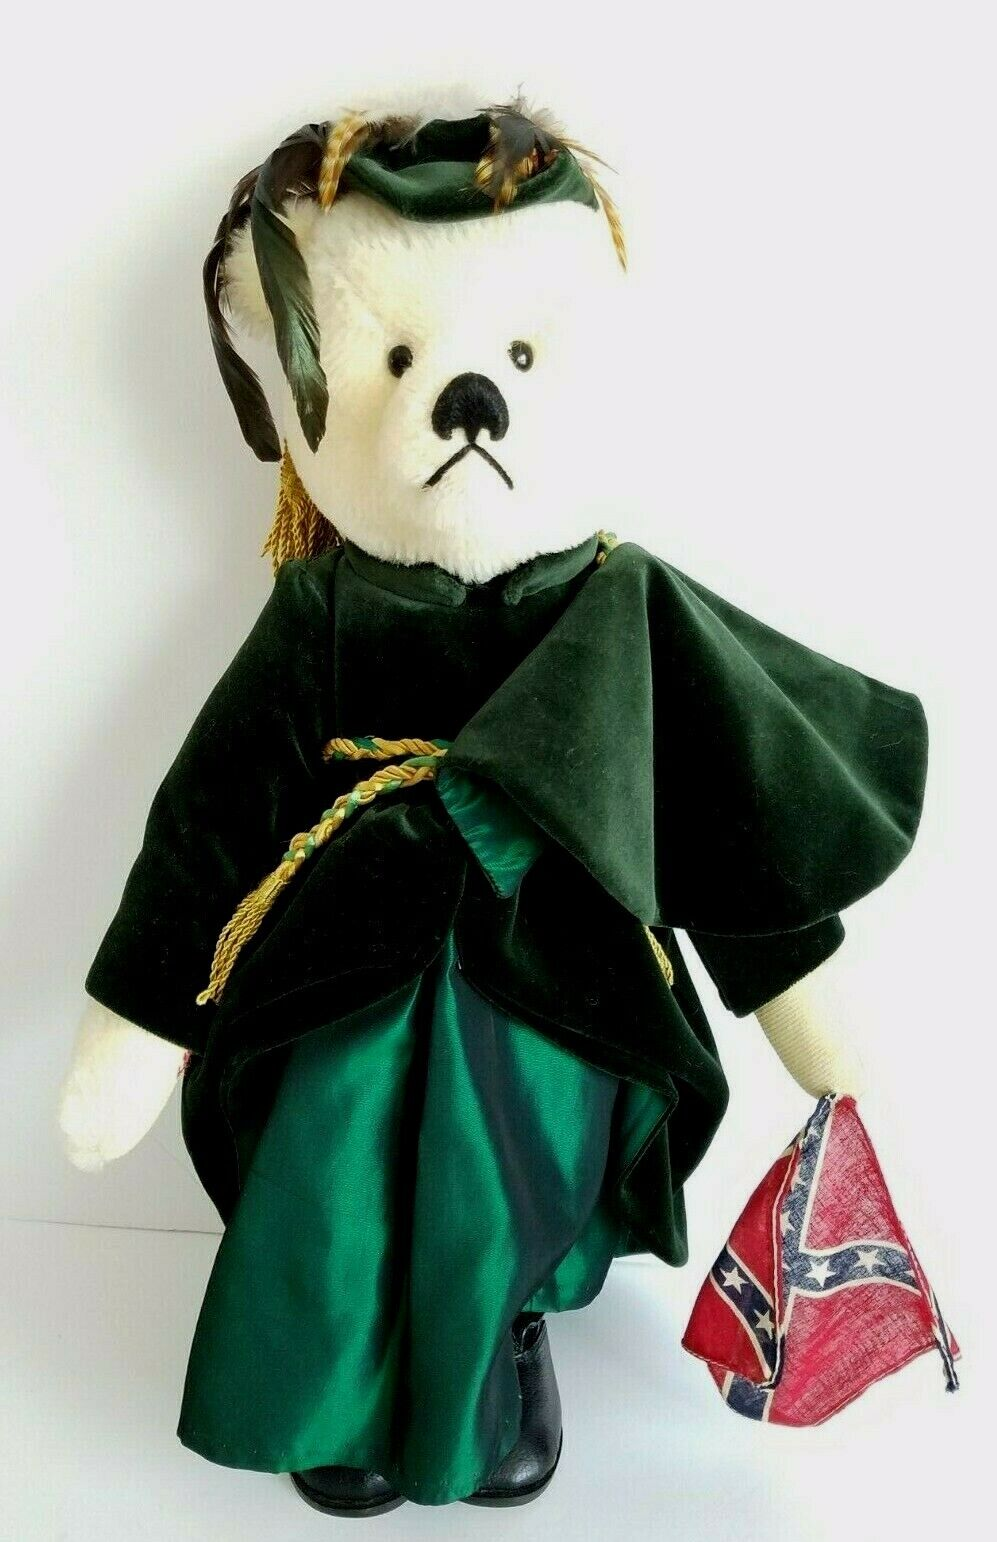 GARY NETT GONE WITH THE WIND SCARLETT O'HARA MOHAIR LIMITED EDITION  4 BEAR